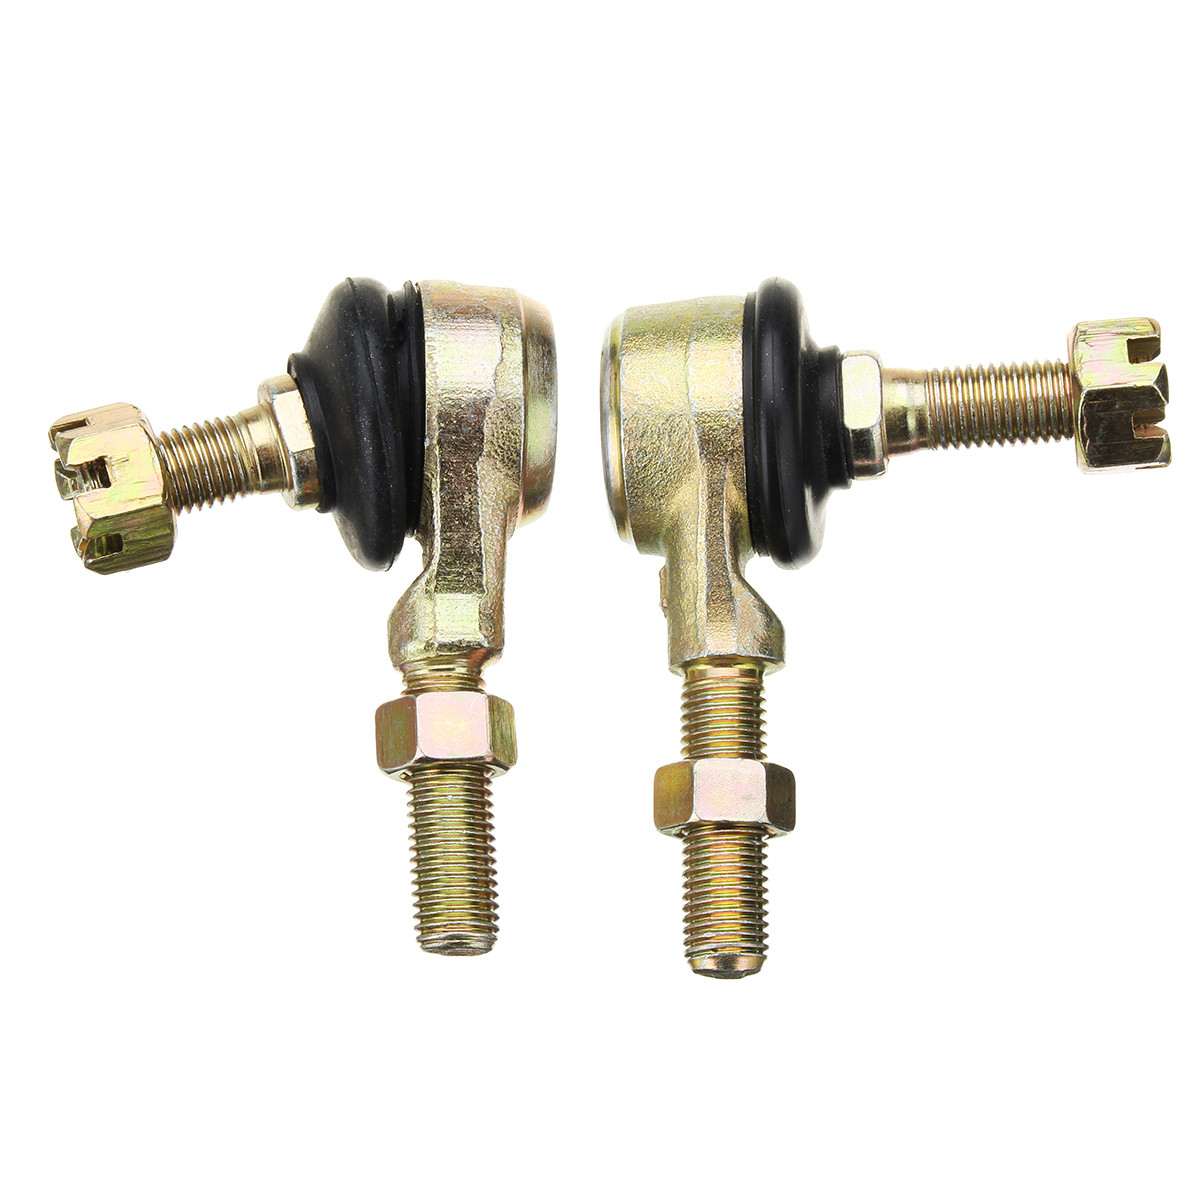 Water Resisting Ball Joints Metal M10 Tie Rod Ball Joint For 50cc upto 250cc ATV Quad 4-Wheeler